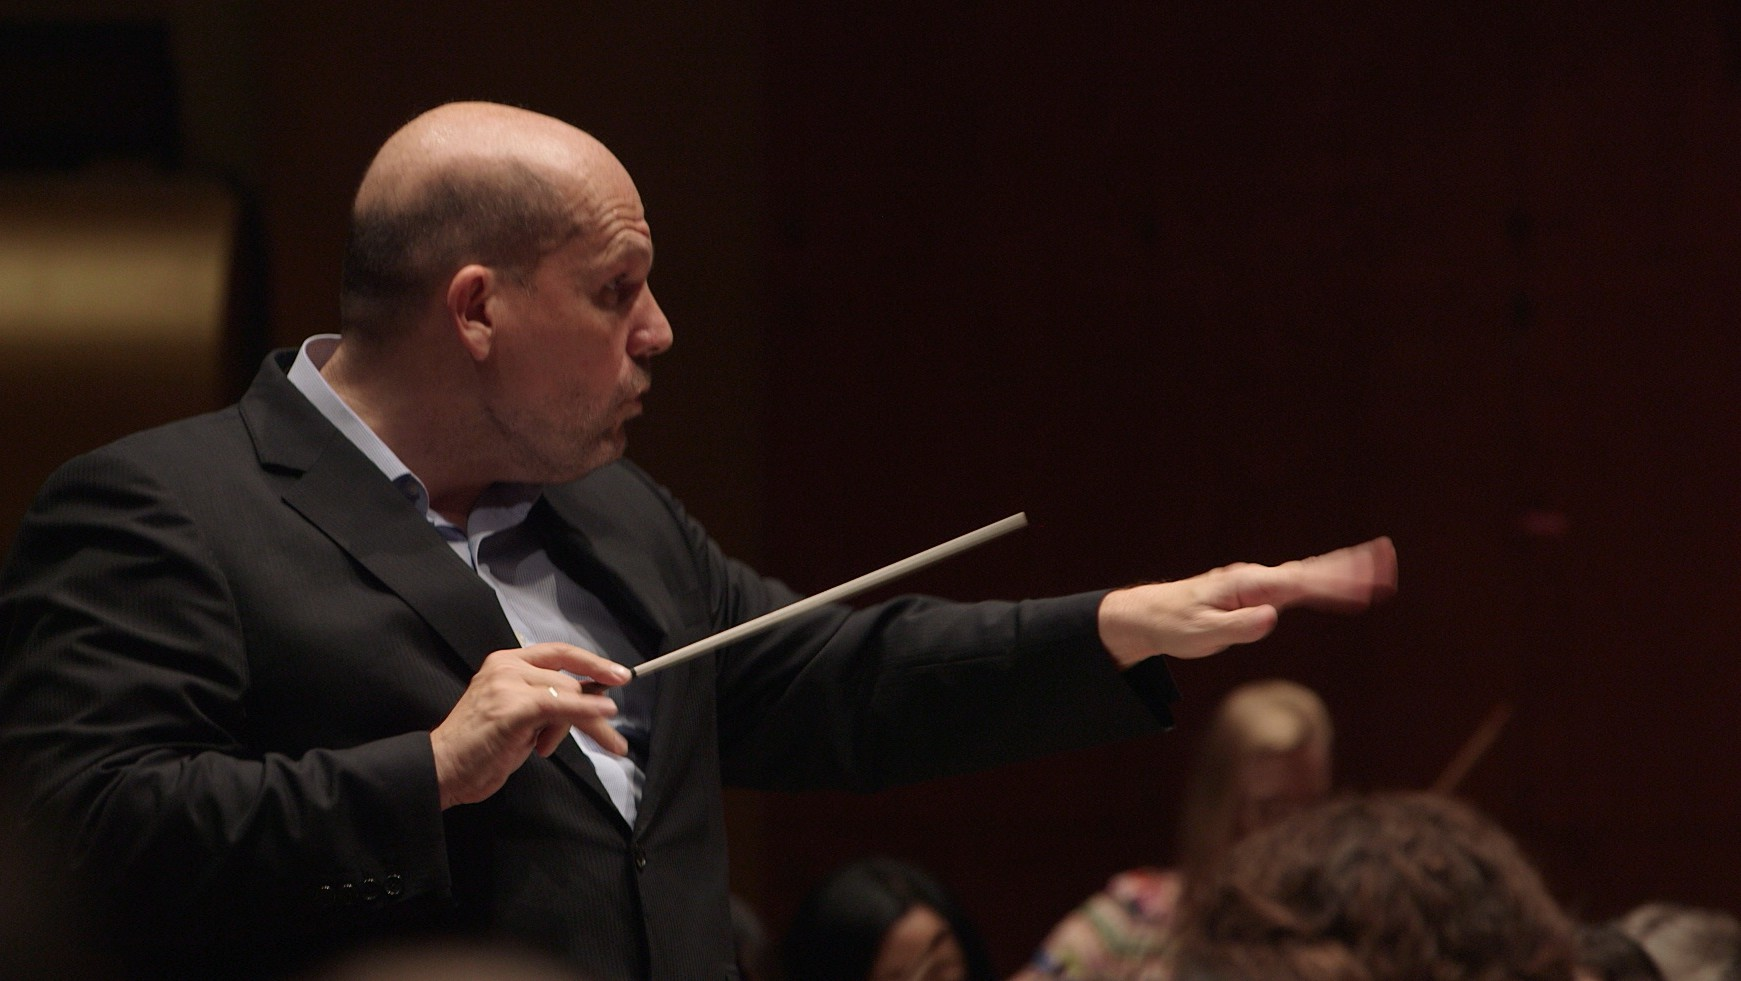 Jaap van Zweden - A Maestro on World Tour